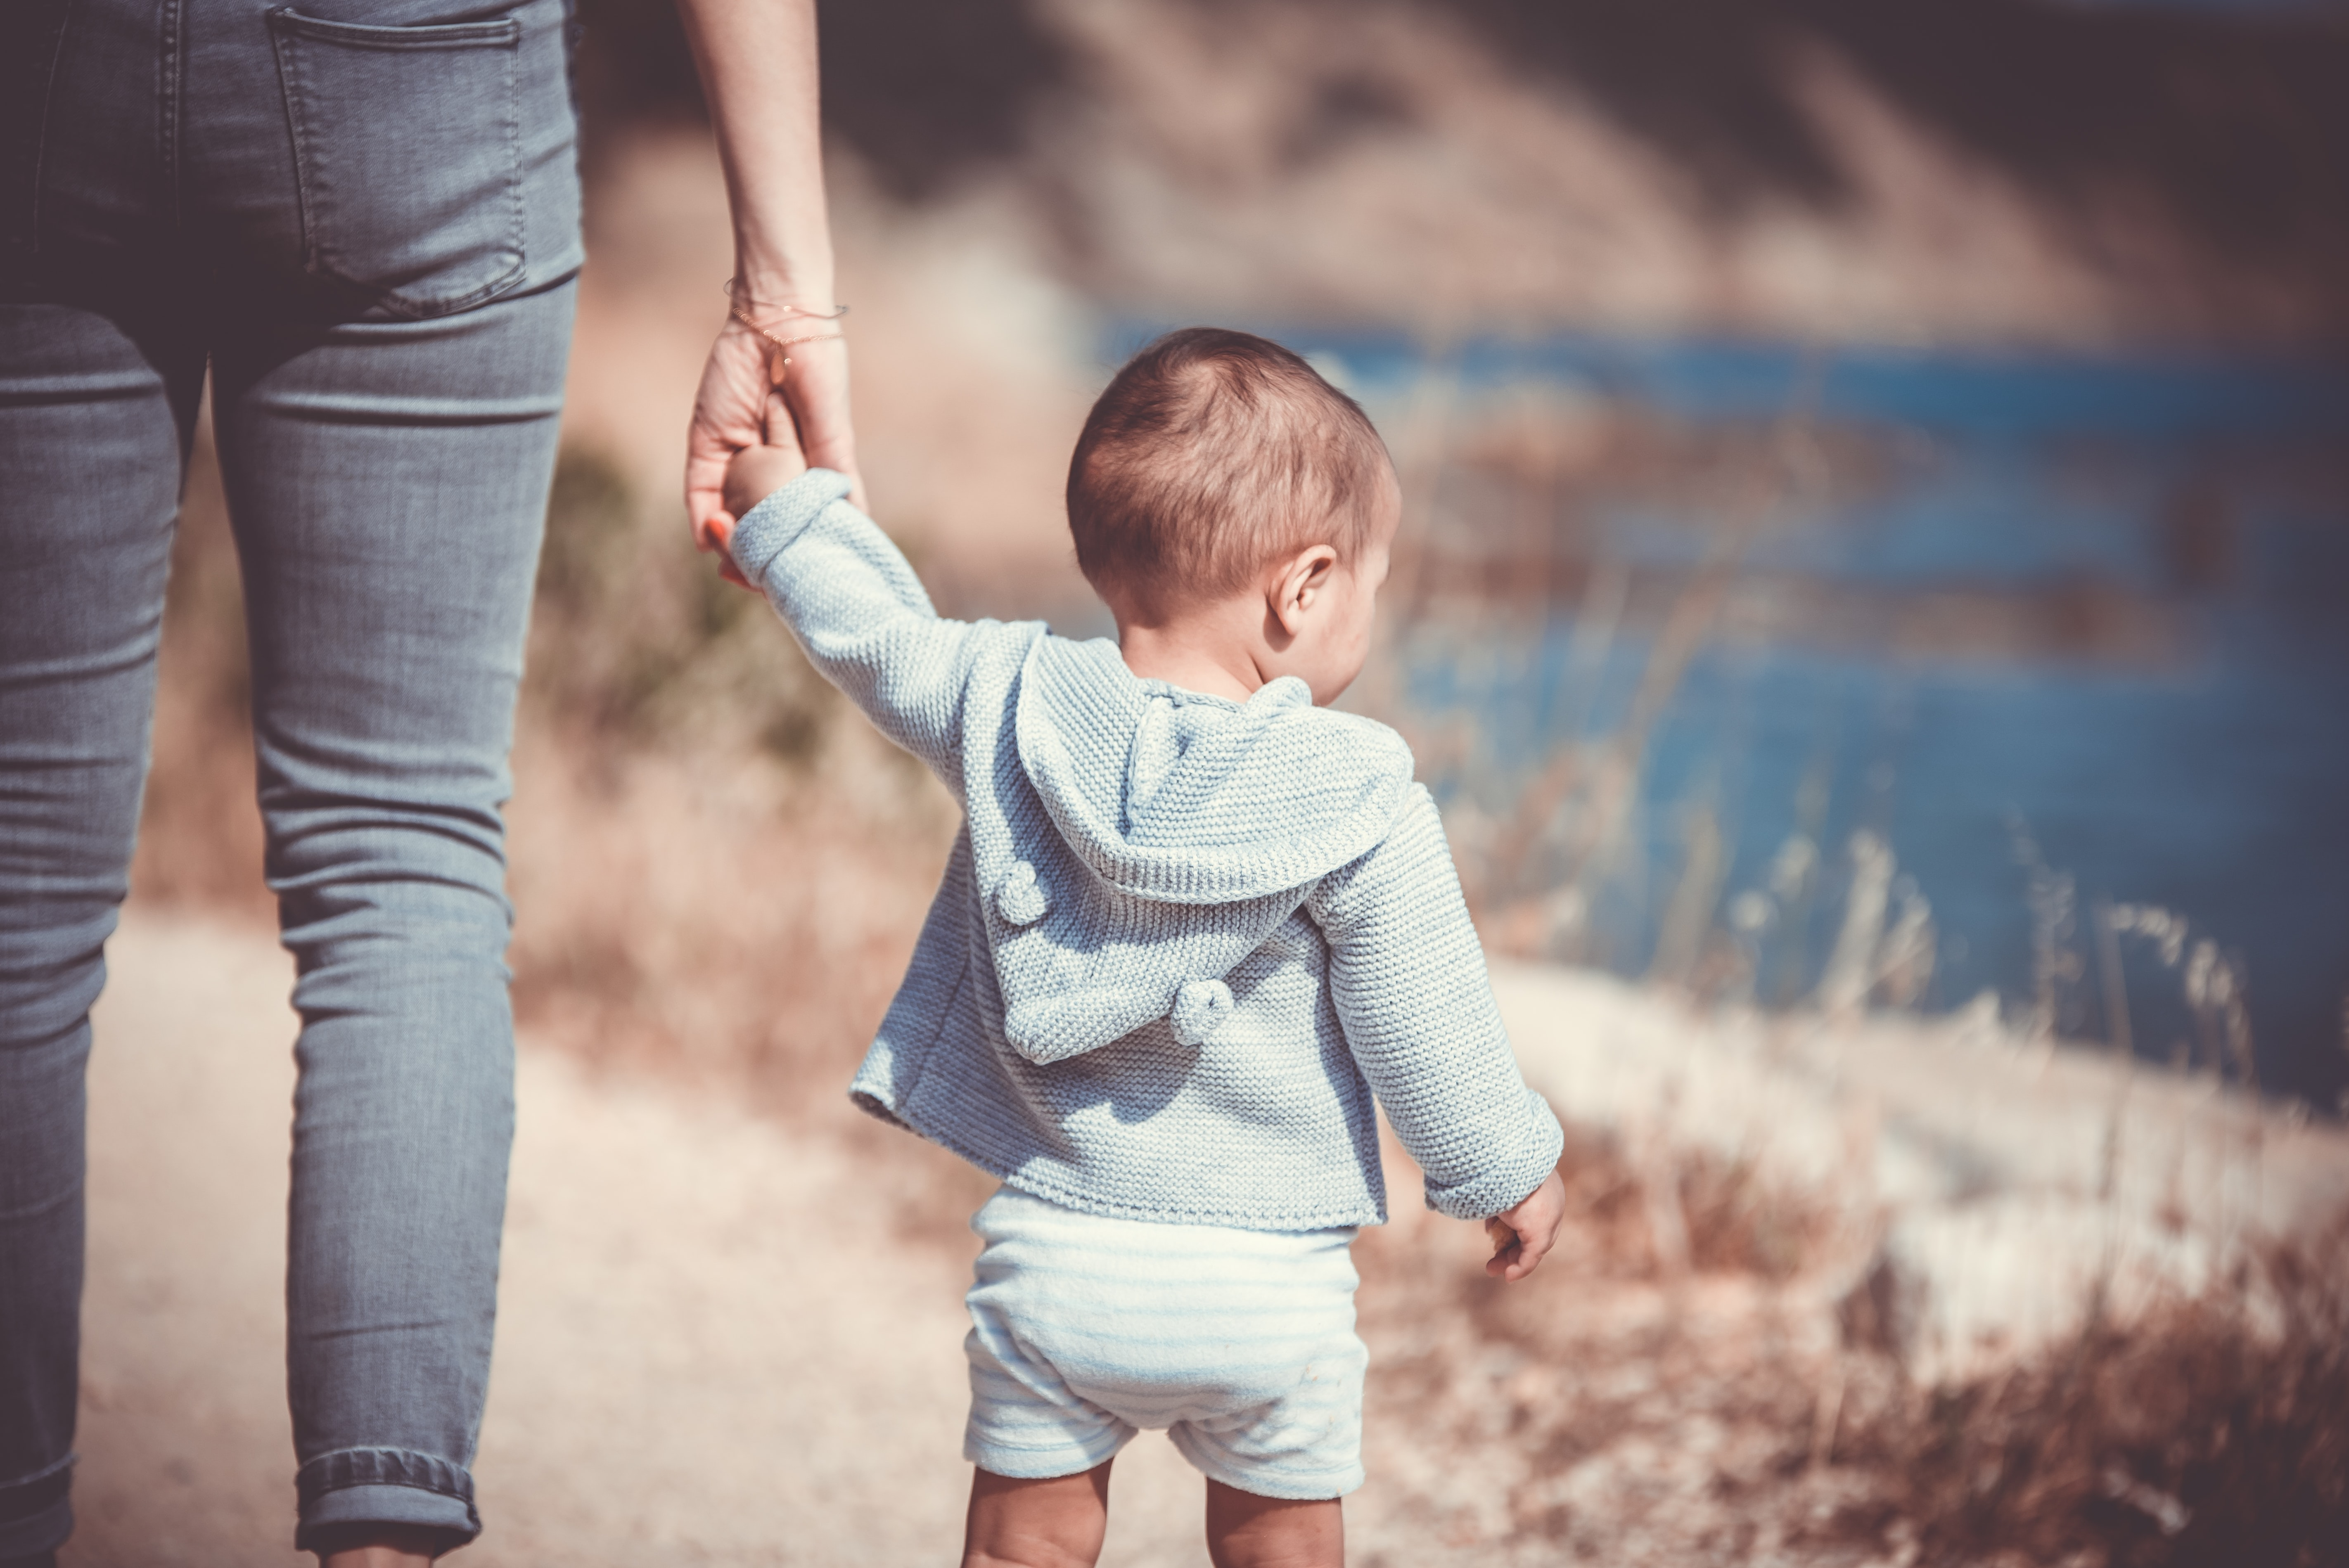 A parent holding her child's hand and walking by the water in a field